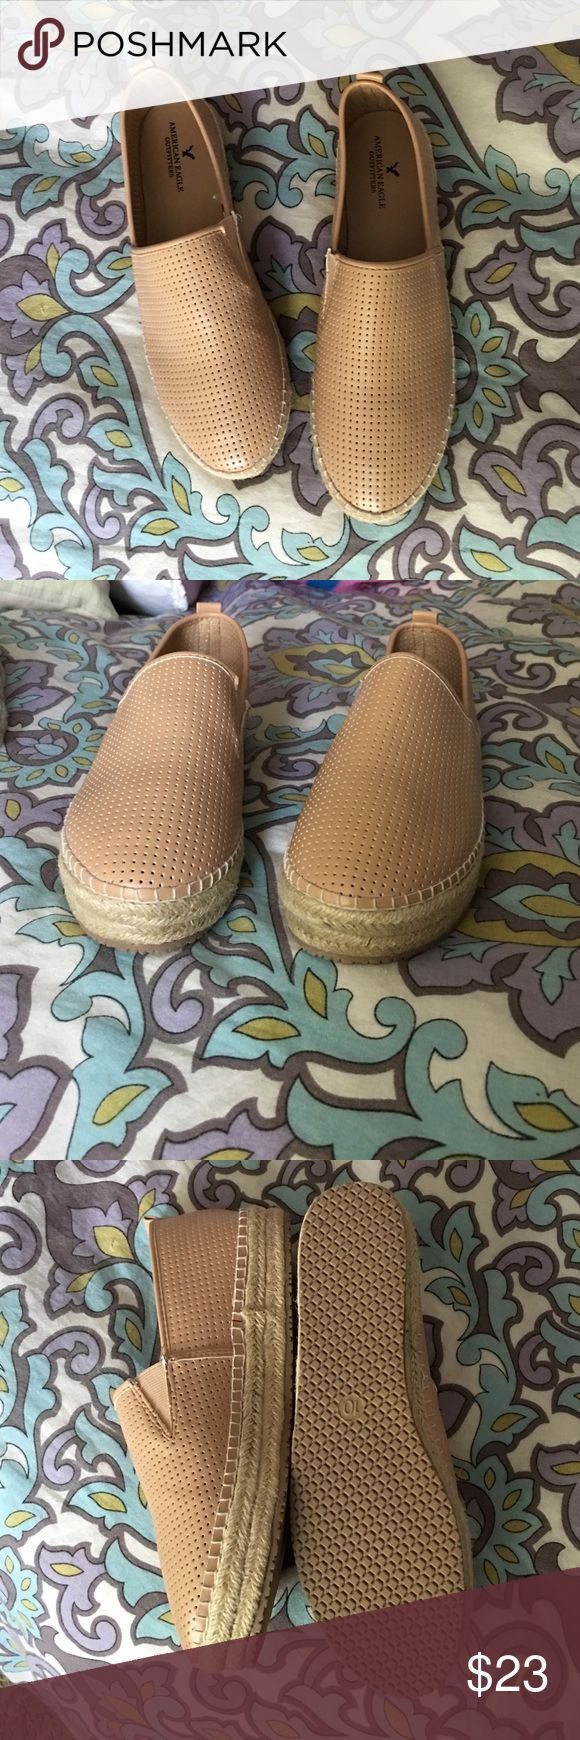 Brand new espadrilles Nudish pink espadrilles, brand new, never worn, size 10 from American Eagle Oitfitters American Eagle Outfitters Shoes Espadrilles